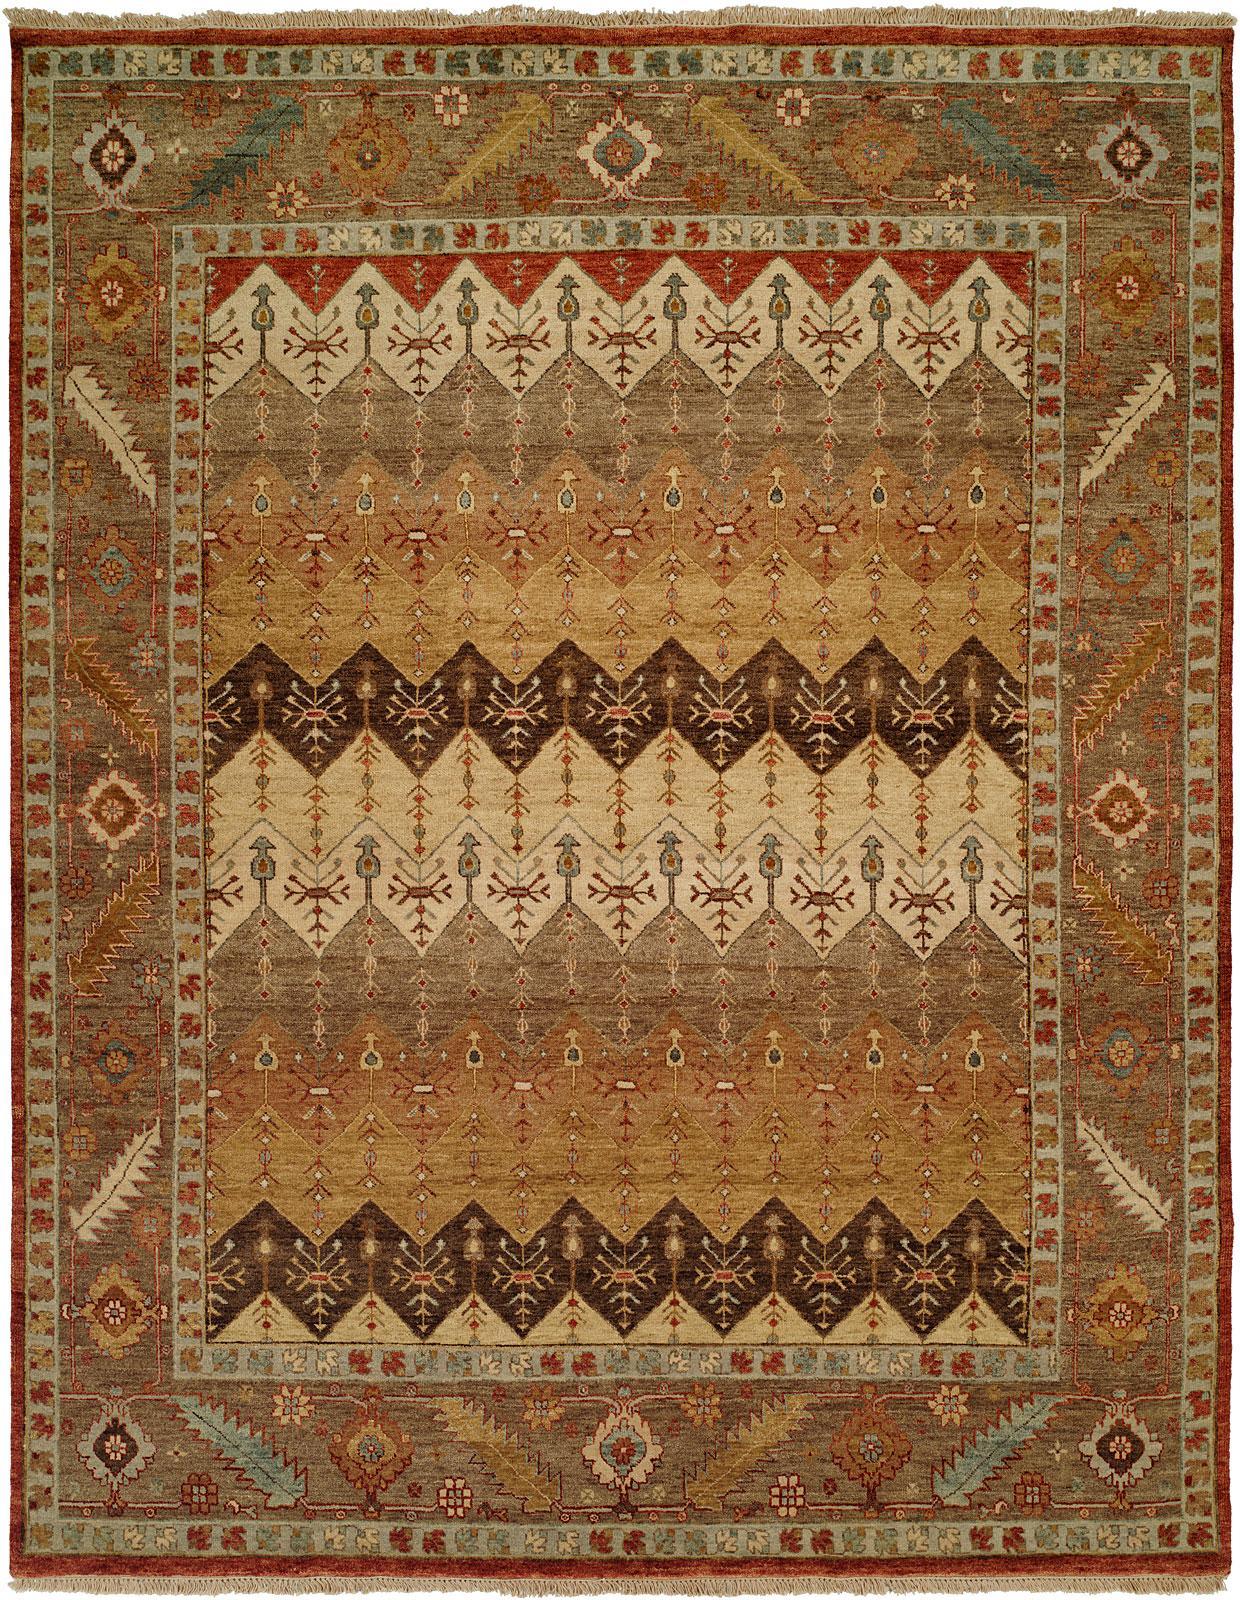 Brown Rust And Tan Multi Colored Area Rug